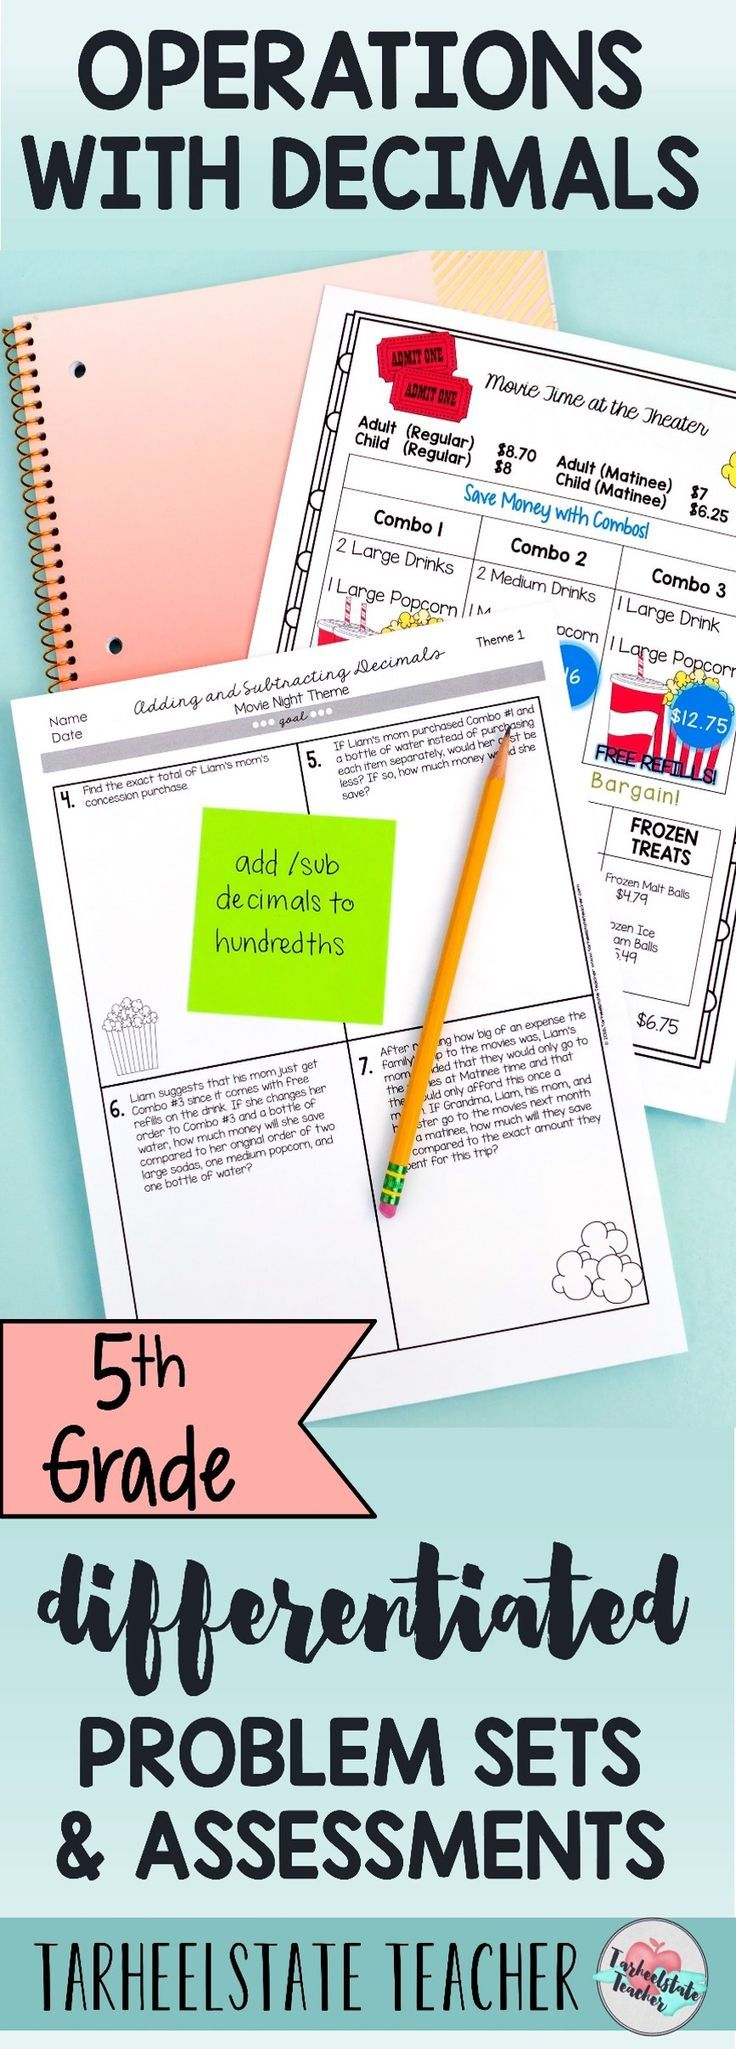 Differentiation for your adding and subtracting decimals unit will be so easy with these add/subtract word problems for 5th grade common core standards. With these differentiated, leveled, standards-based assessments or practice sheets, your students will be doing MORE THAN WORKSHEETS while developing their #growthmindset in math. #differentiatedmathideas. Includes multiplying and dividing decimals word problems and computation sets.